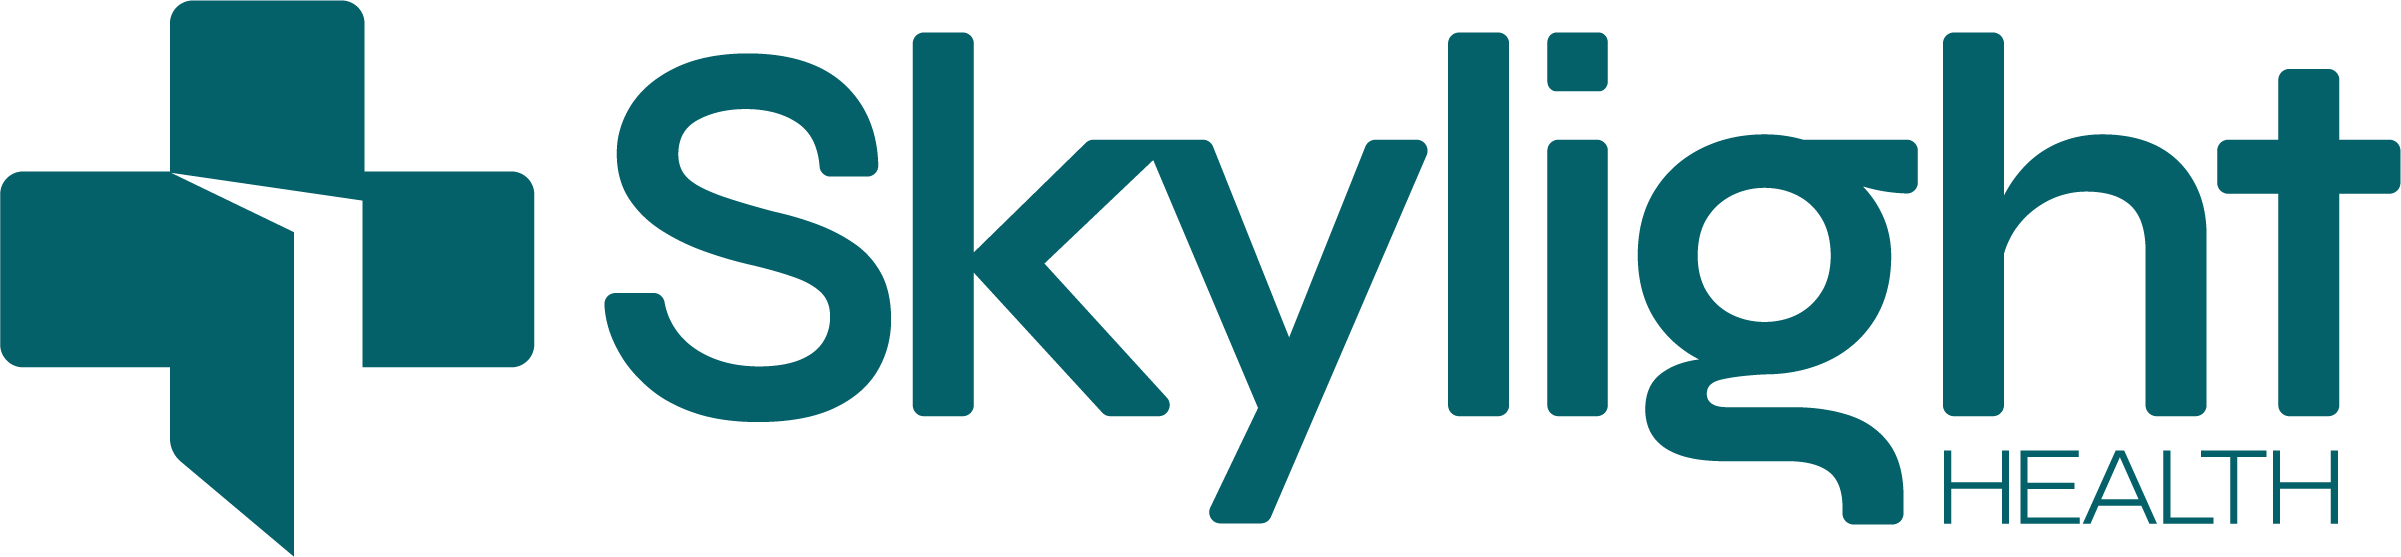 Skylight Health to Provide a Discount Drug Card Program to its Expanding Subscription Offering for Uninsured Americans